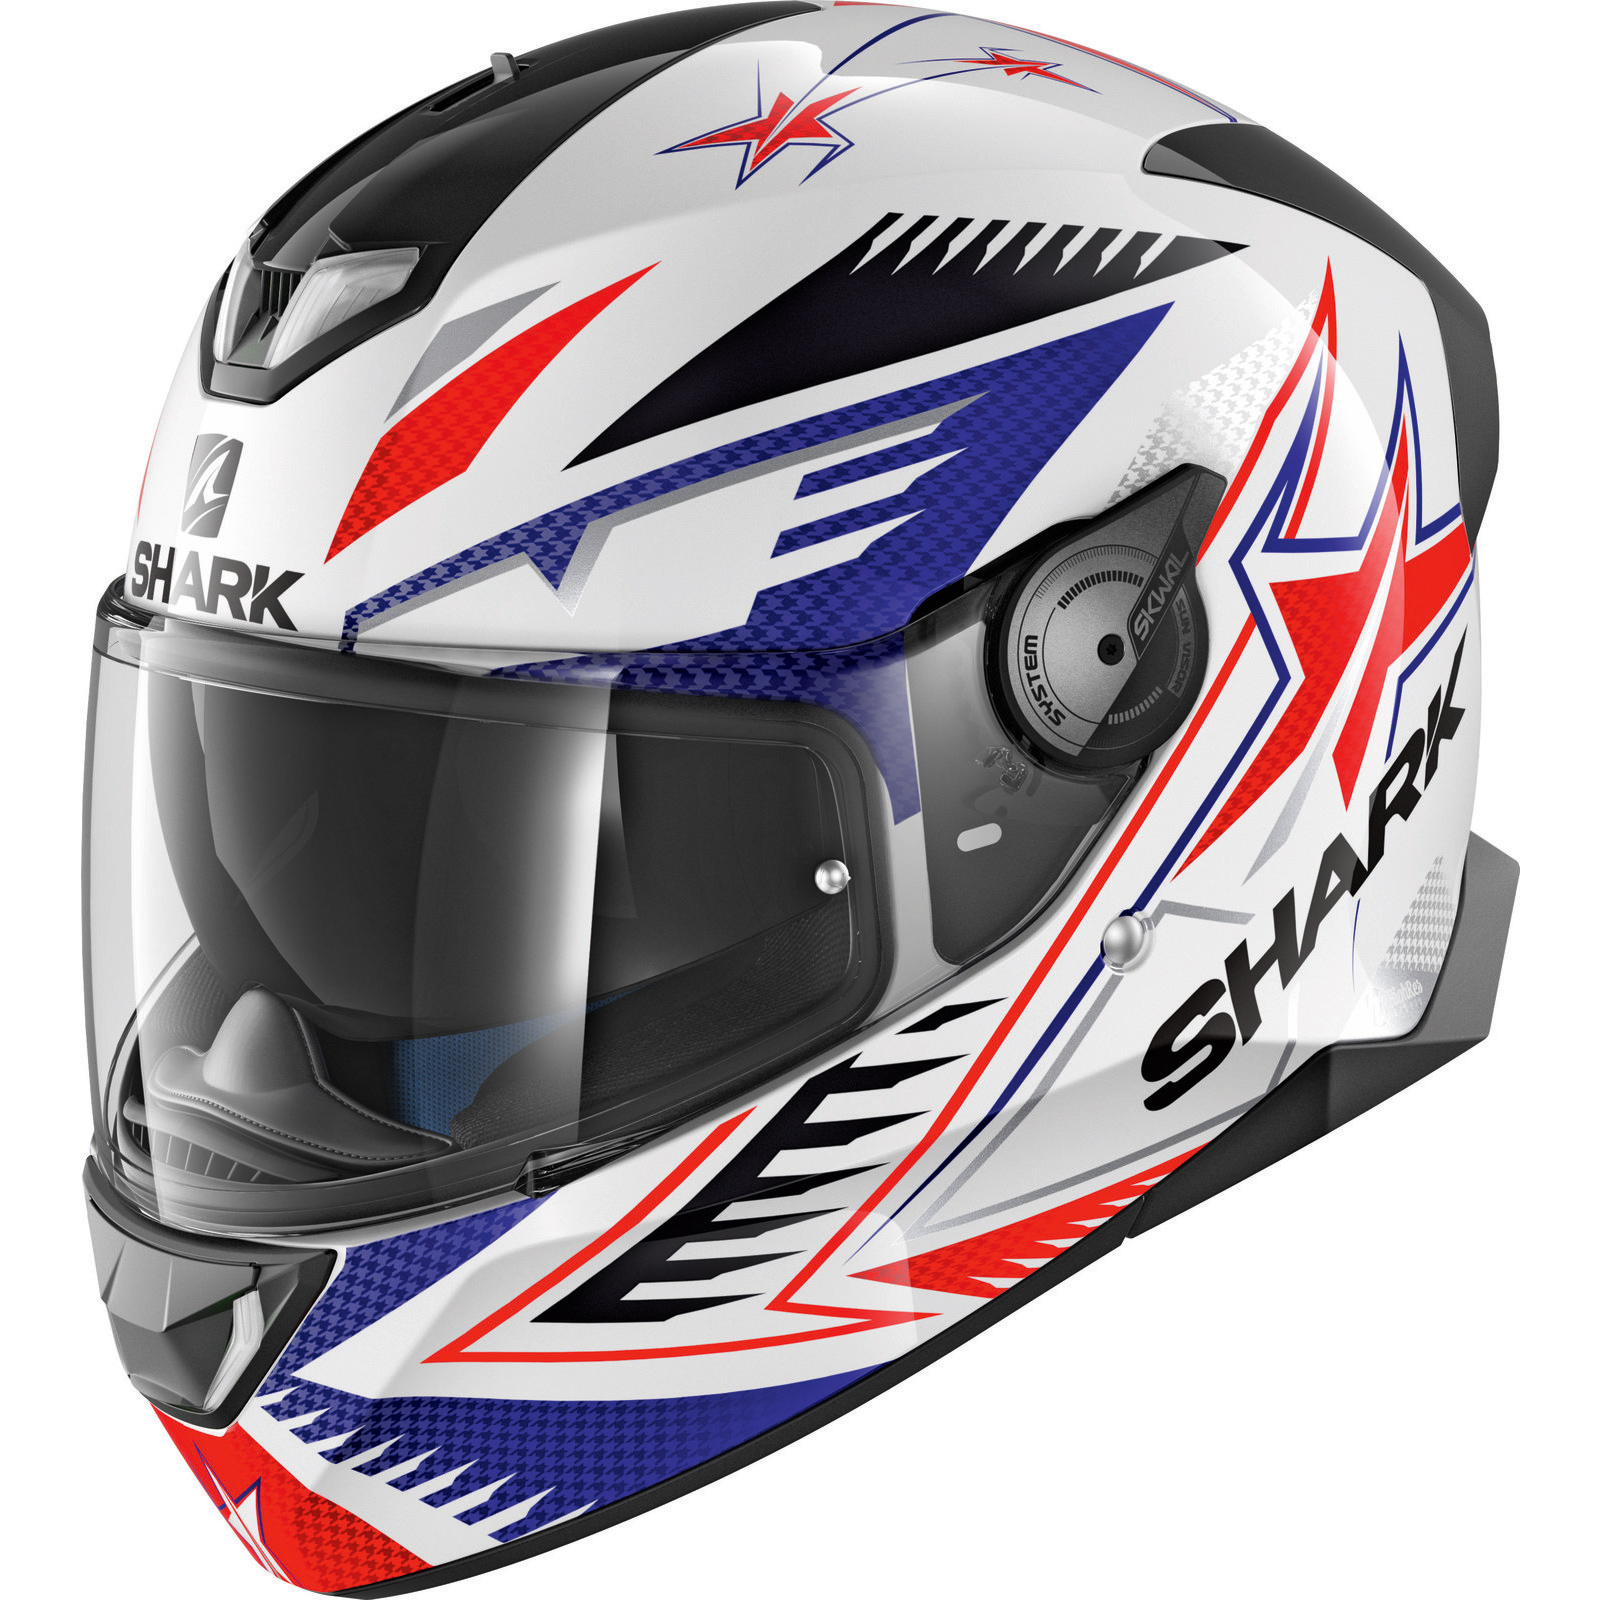 shark skwal 2 draghal white blue red motorcycle helmet wbr motorbike sun visor ebay. Black Bedroom Furniture Sets. Home Design Ideas